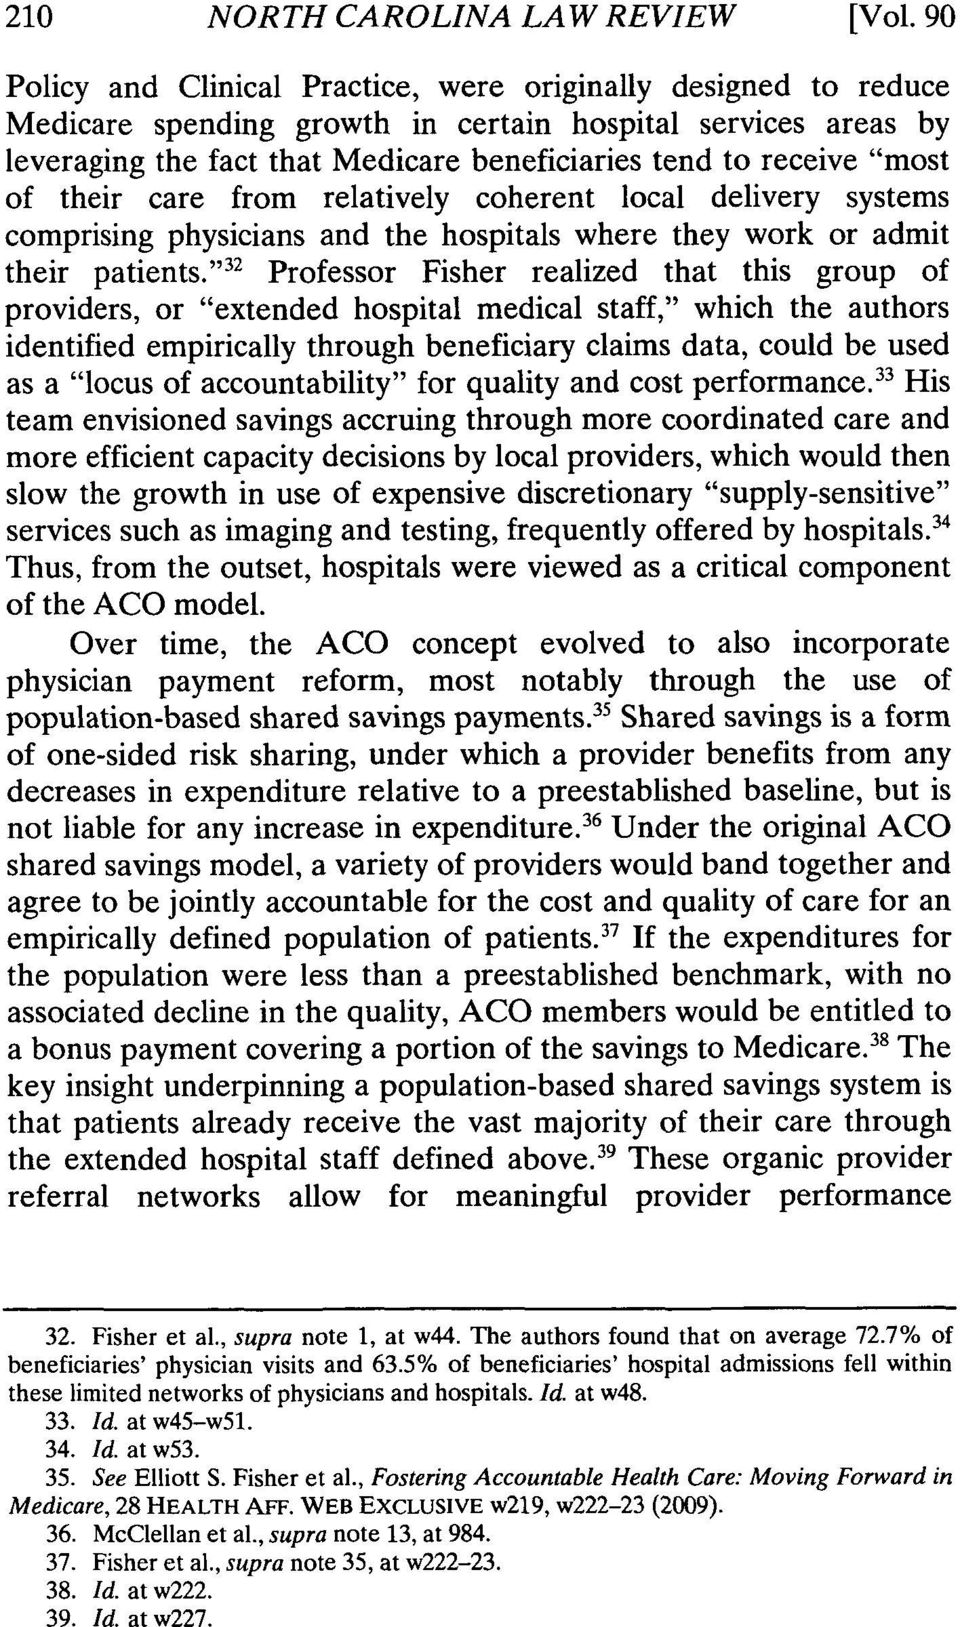 """most of their care from relatively coherent local delivery systems comprising physicians and the hospitals where they work or admit their patients."